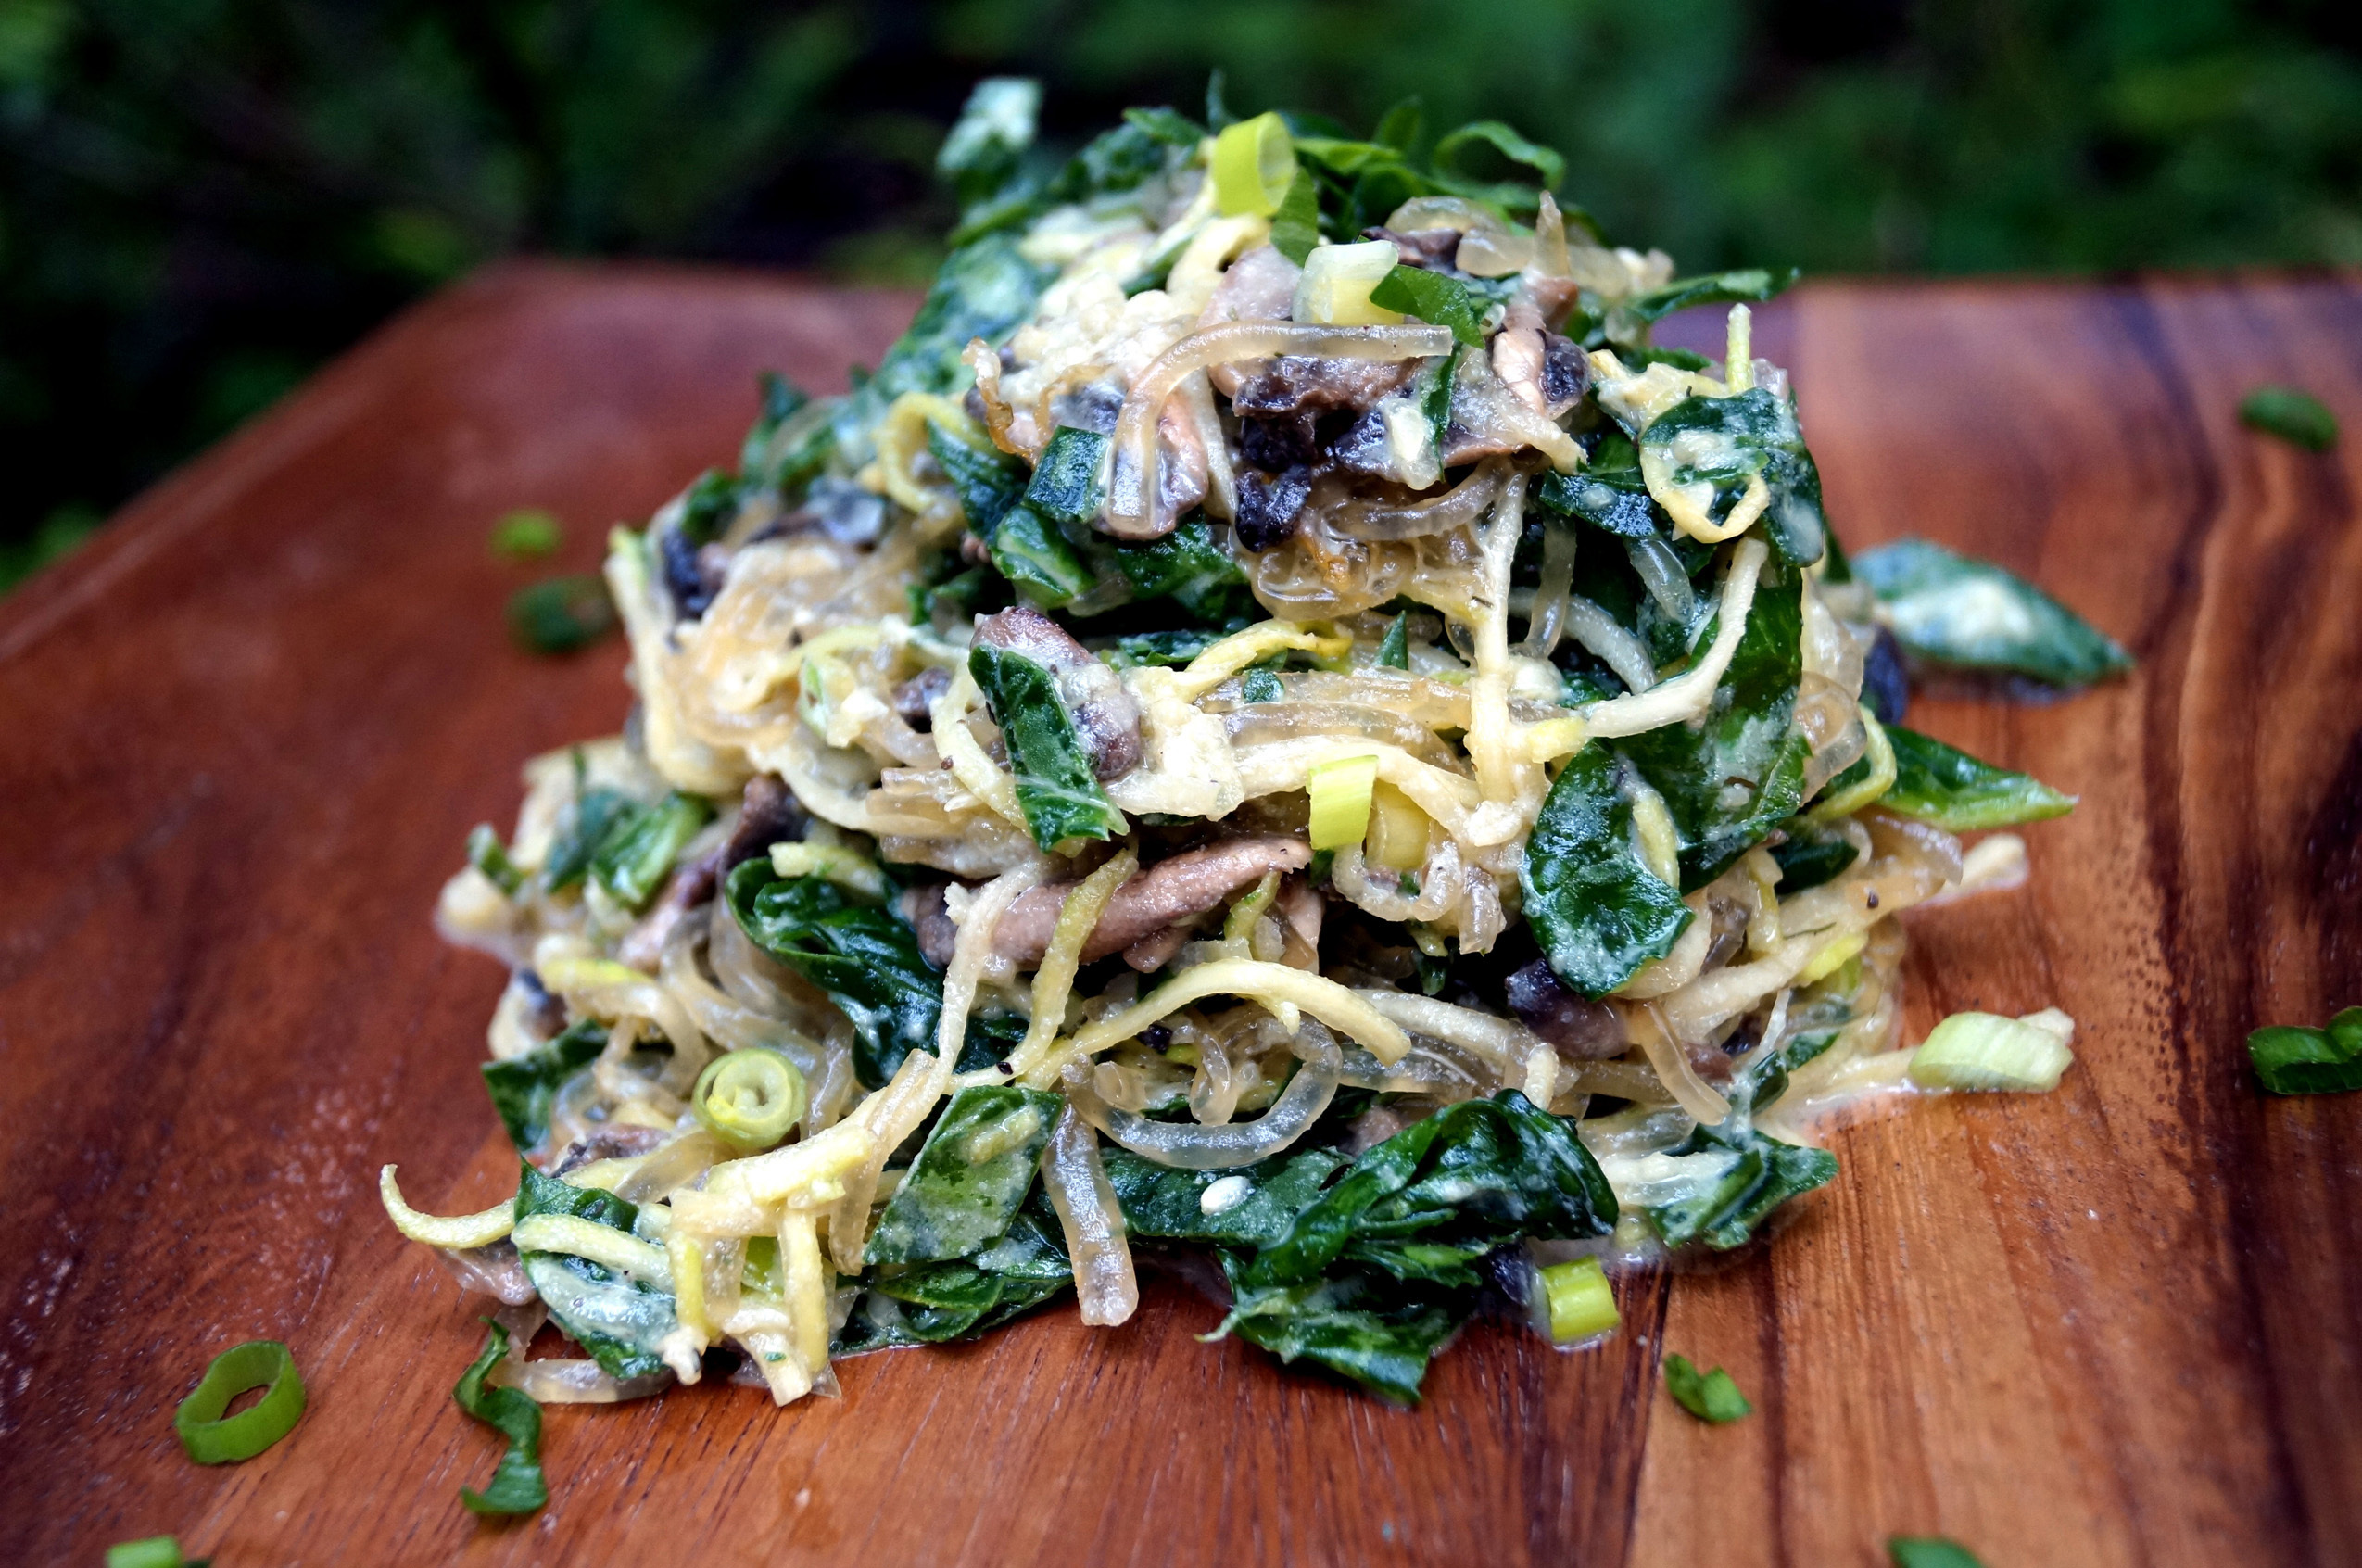 Zucchini and Kelp Pasta in Mushroom & Spinach Cheeze Sauce